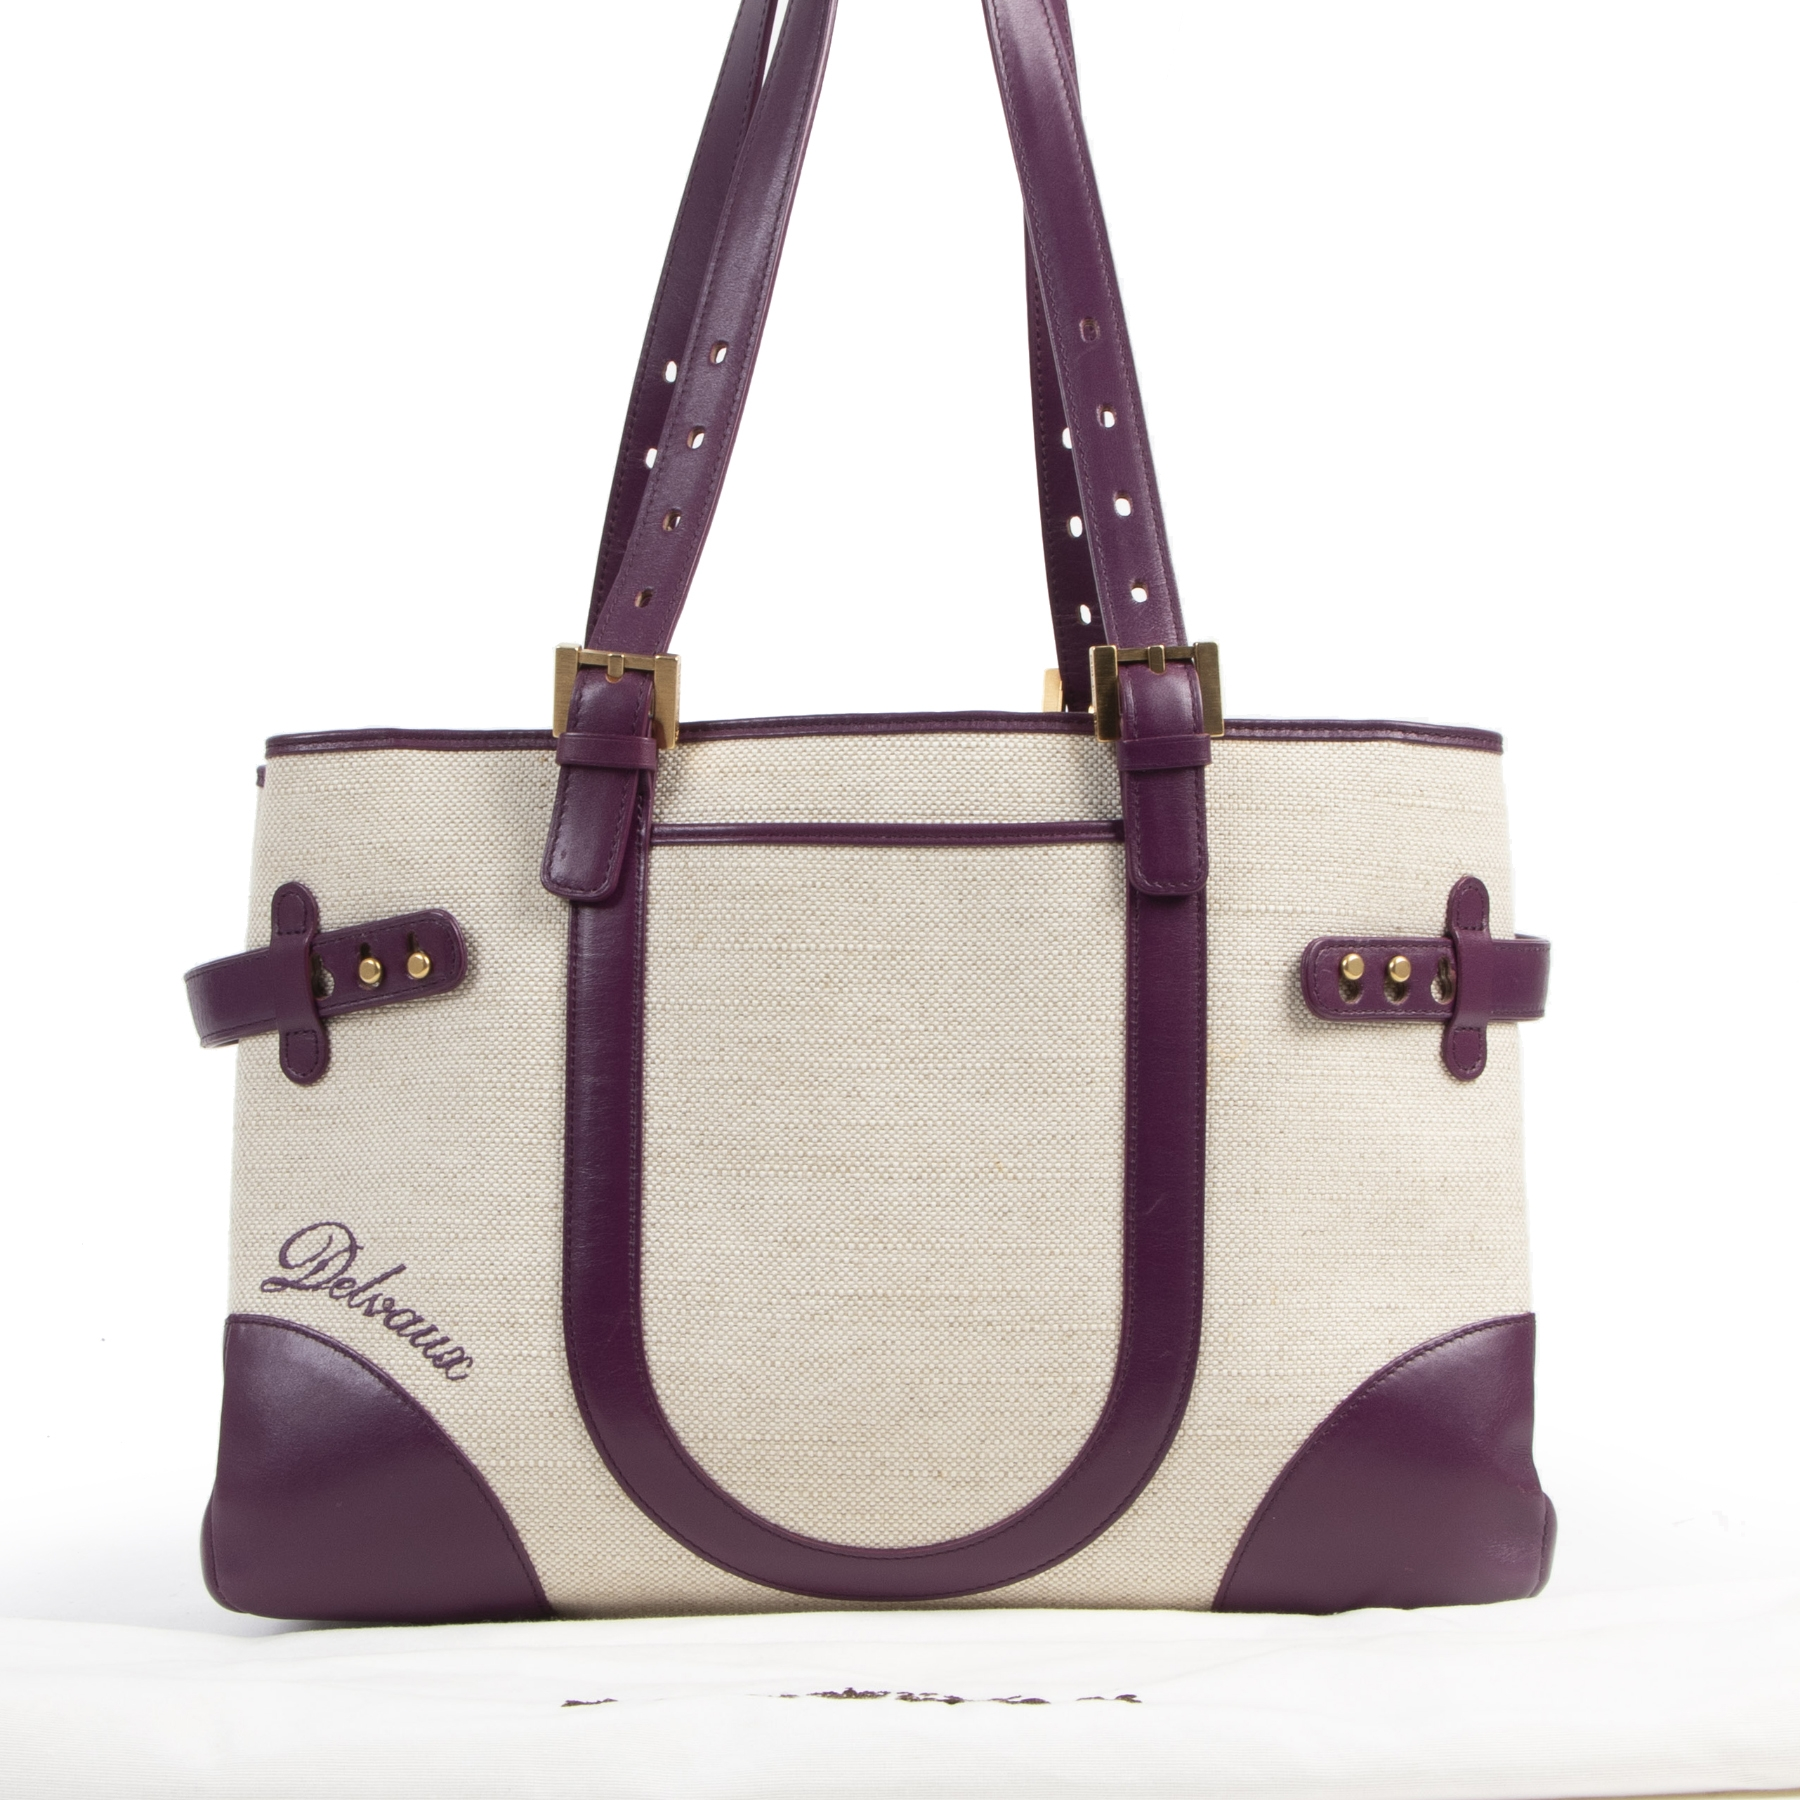 Authentieke tweedehands vintage Delvaux Tempête City MM Purple koop online webshop LabelLOV